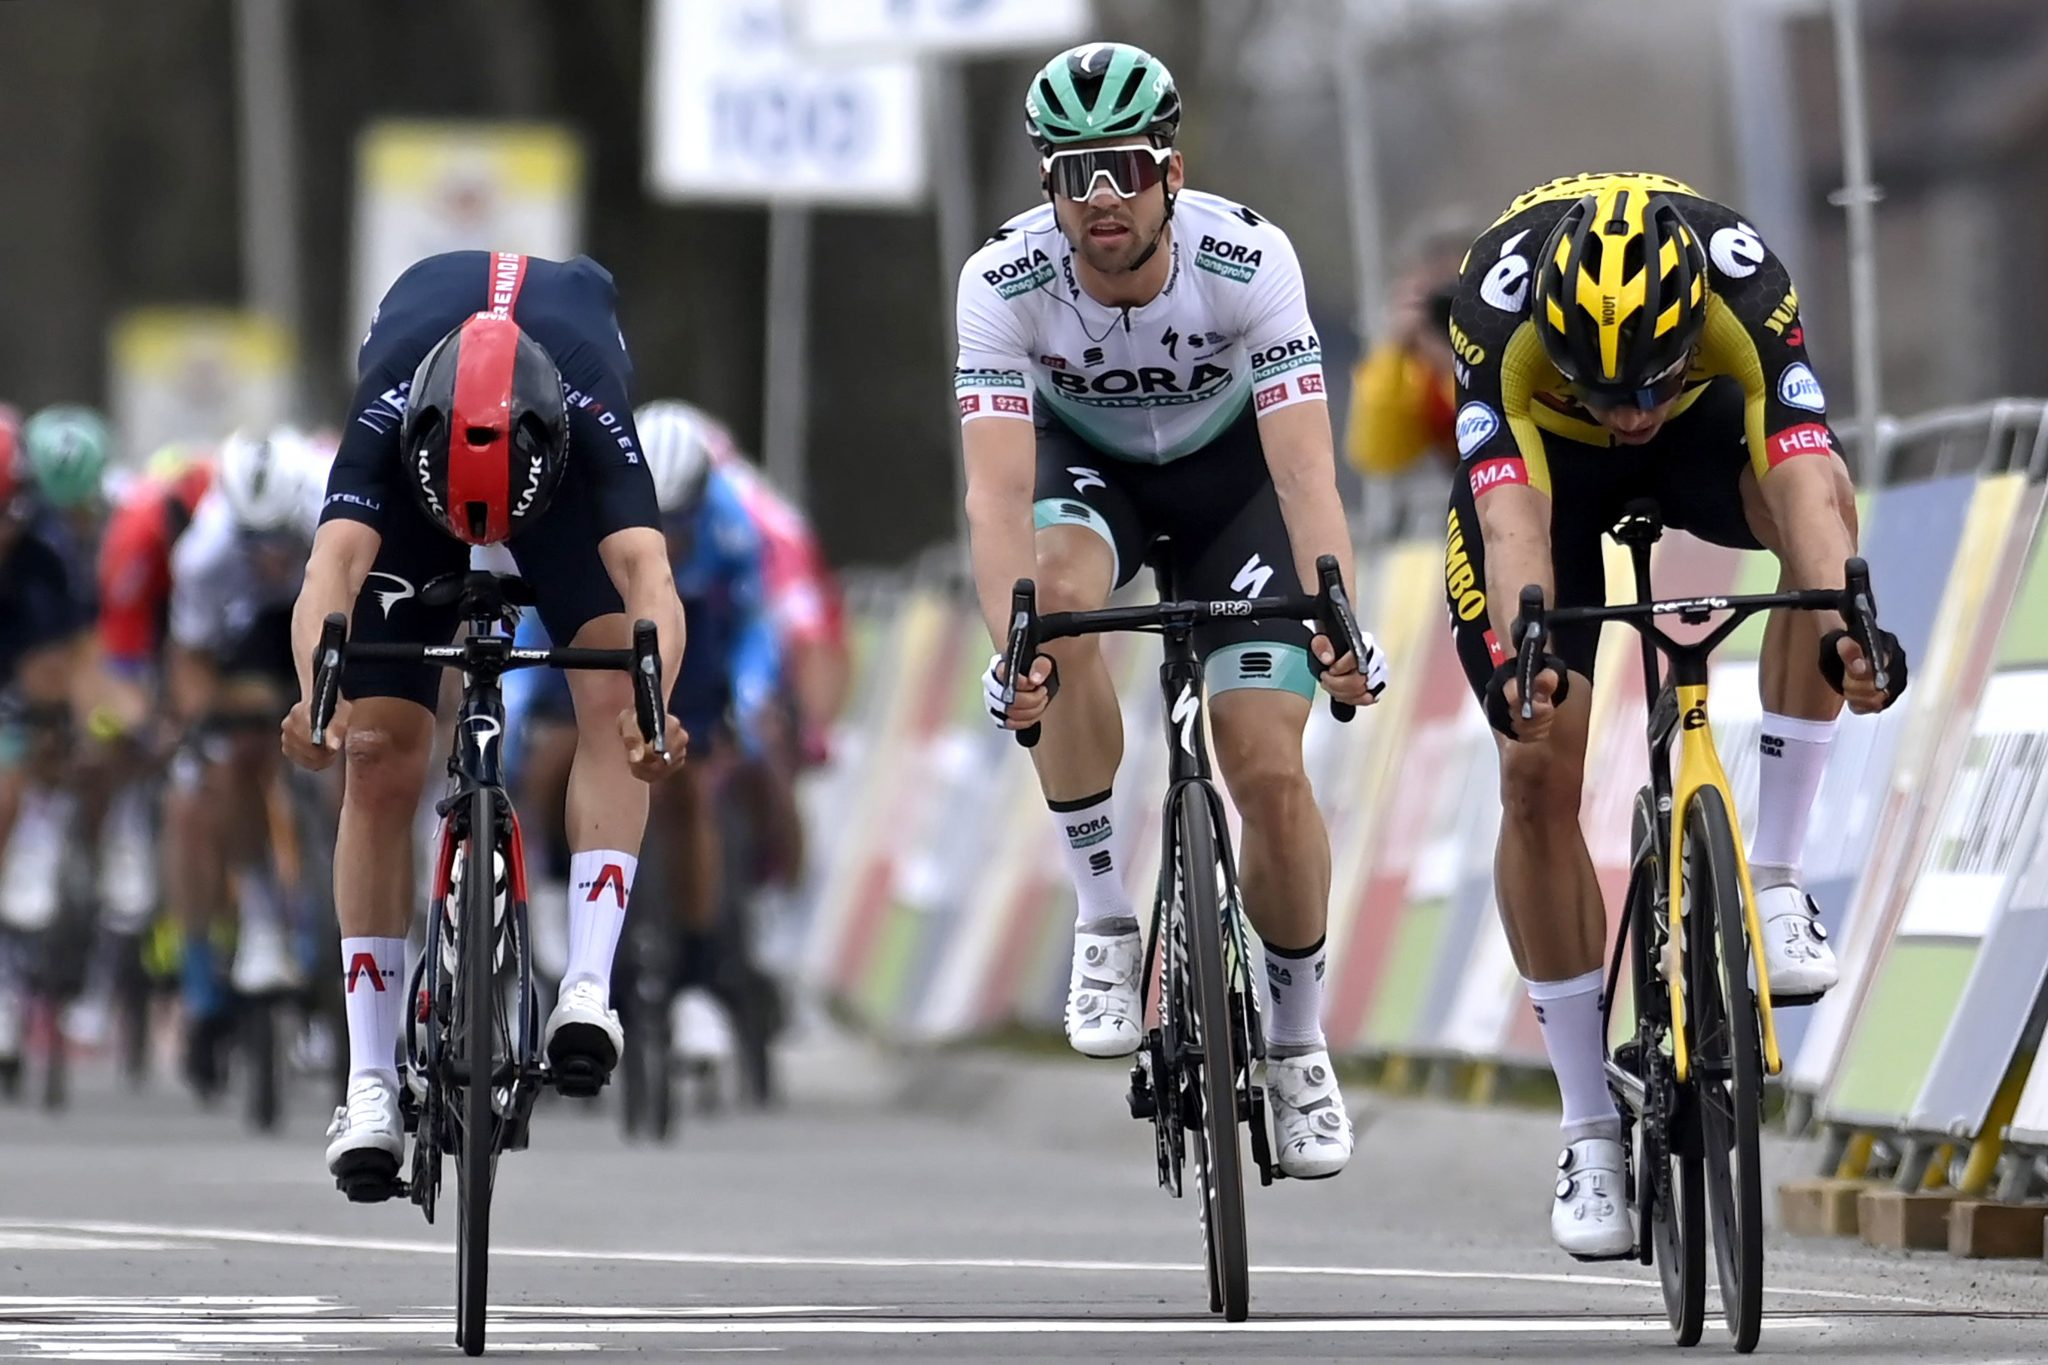 2021 AMSTEL GOLD RACE RECAP AND RESULTS